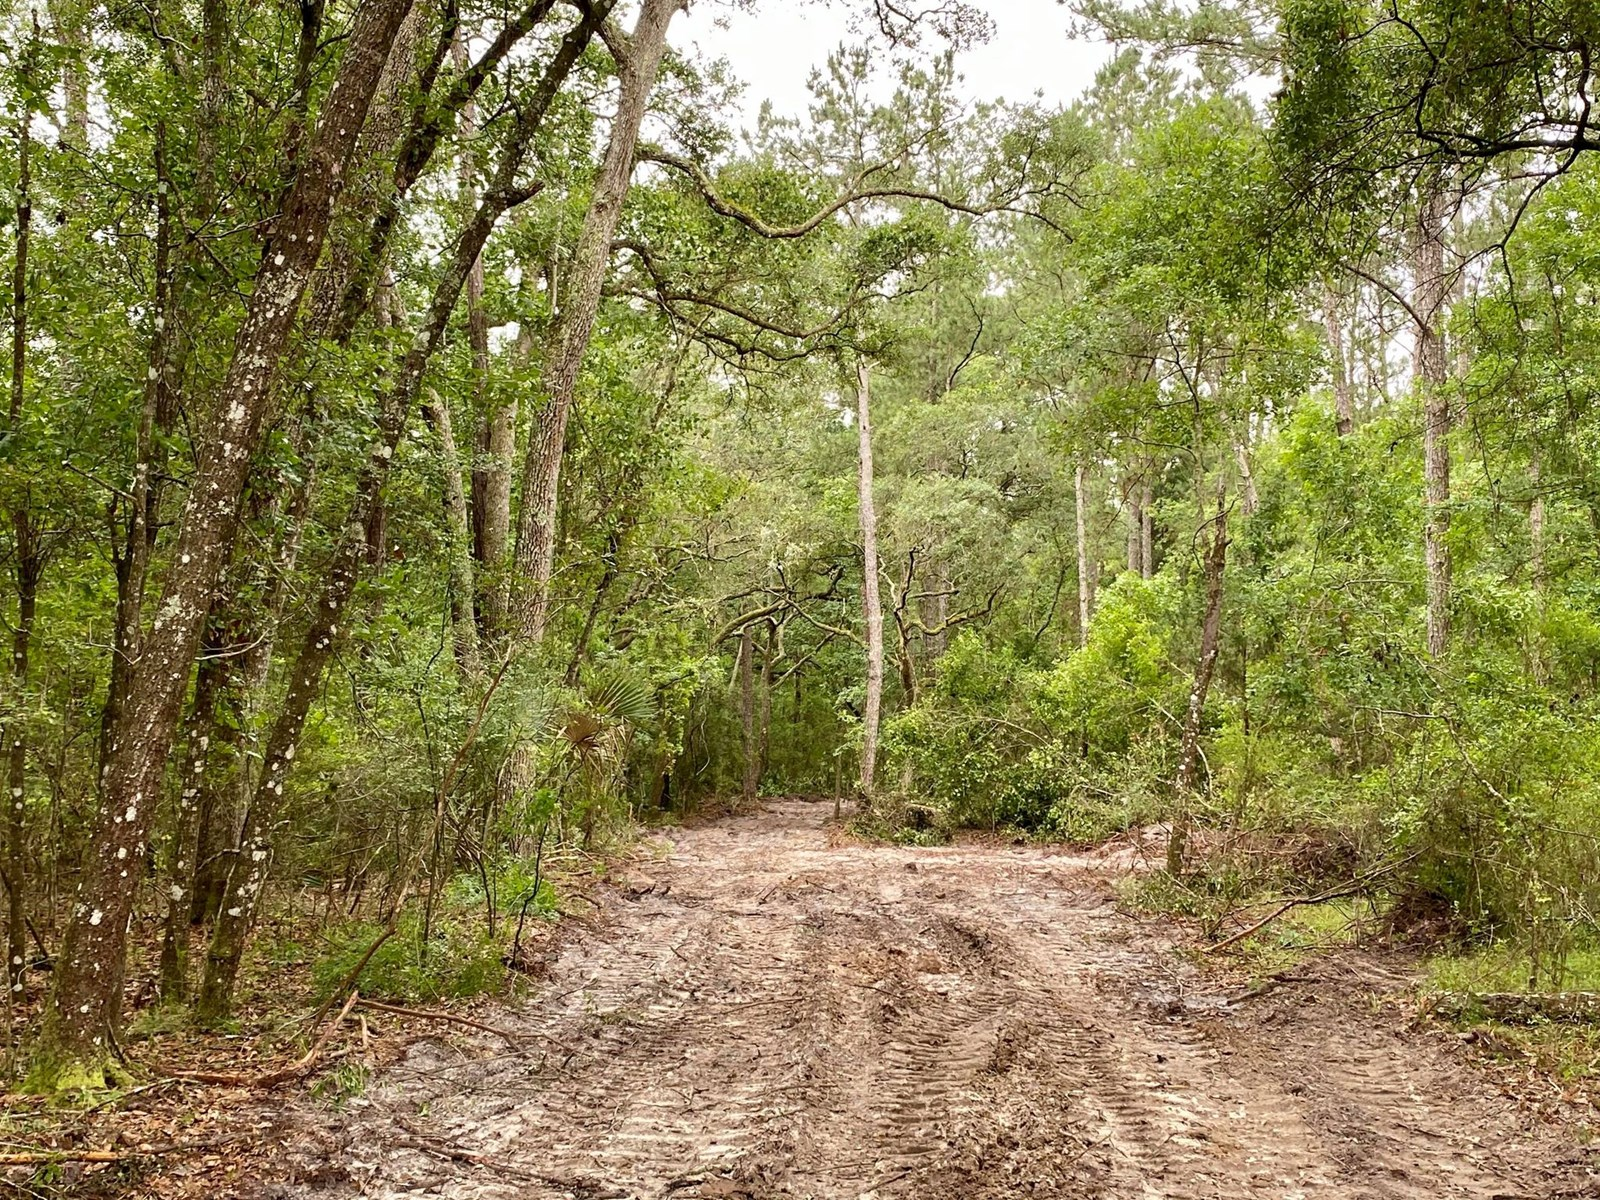 22 ACRES IN BEAUTIFUL BELL FLORIDA!